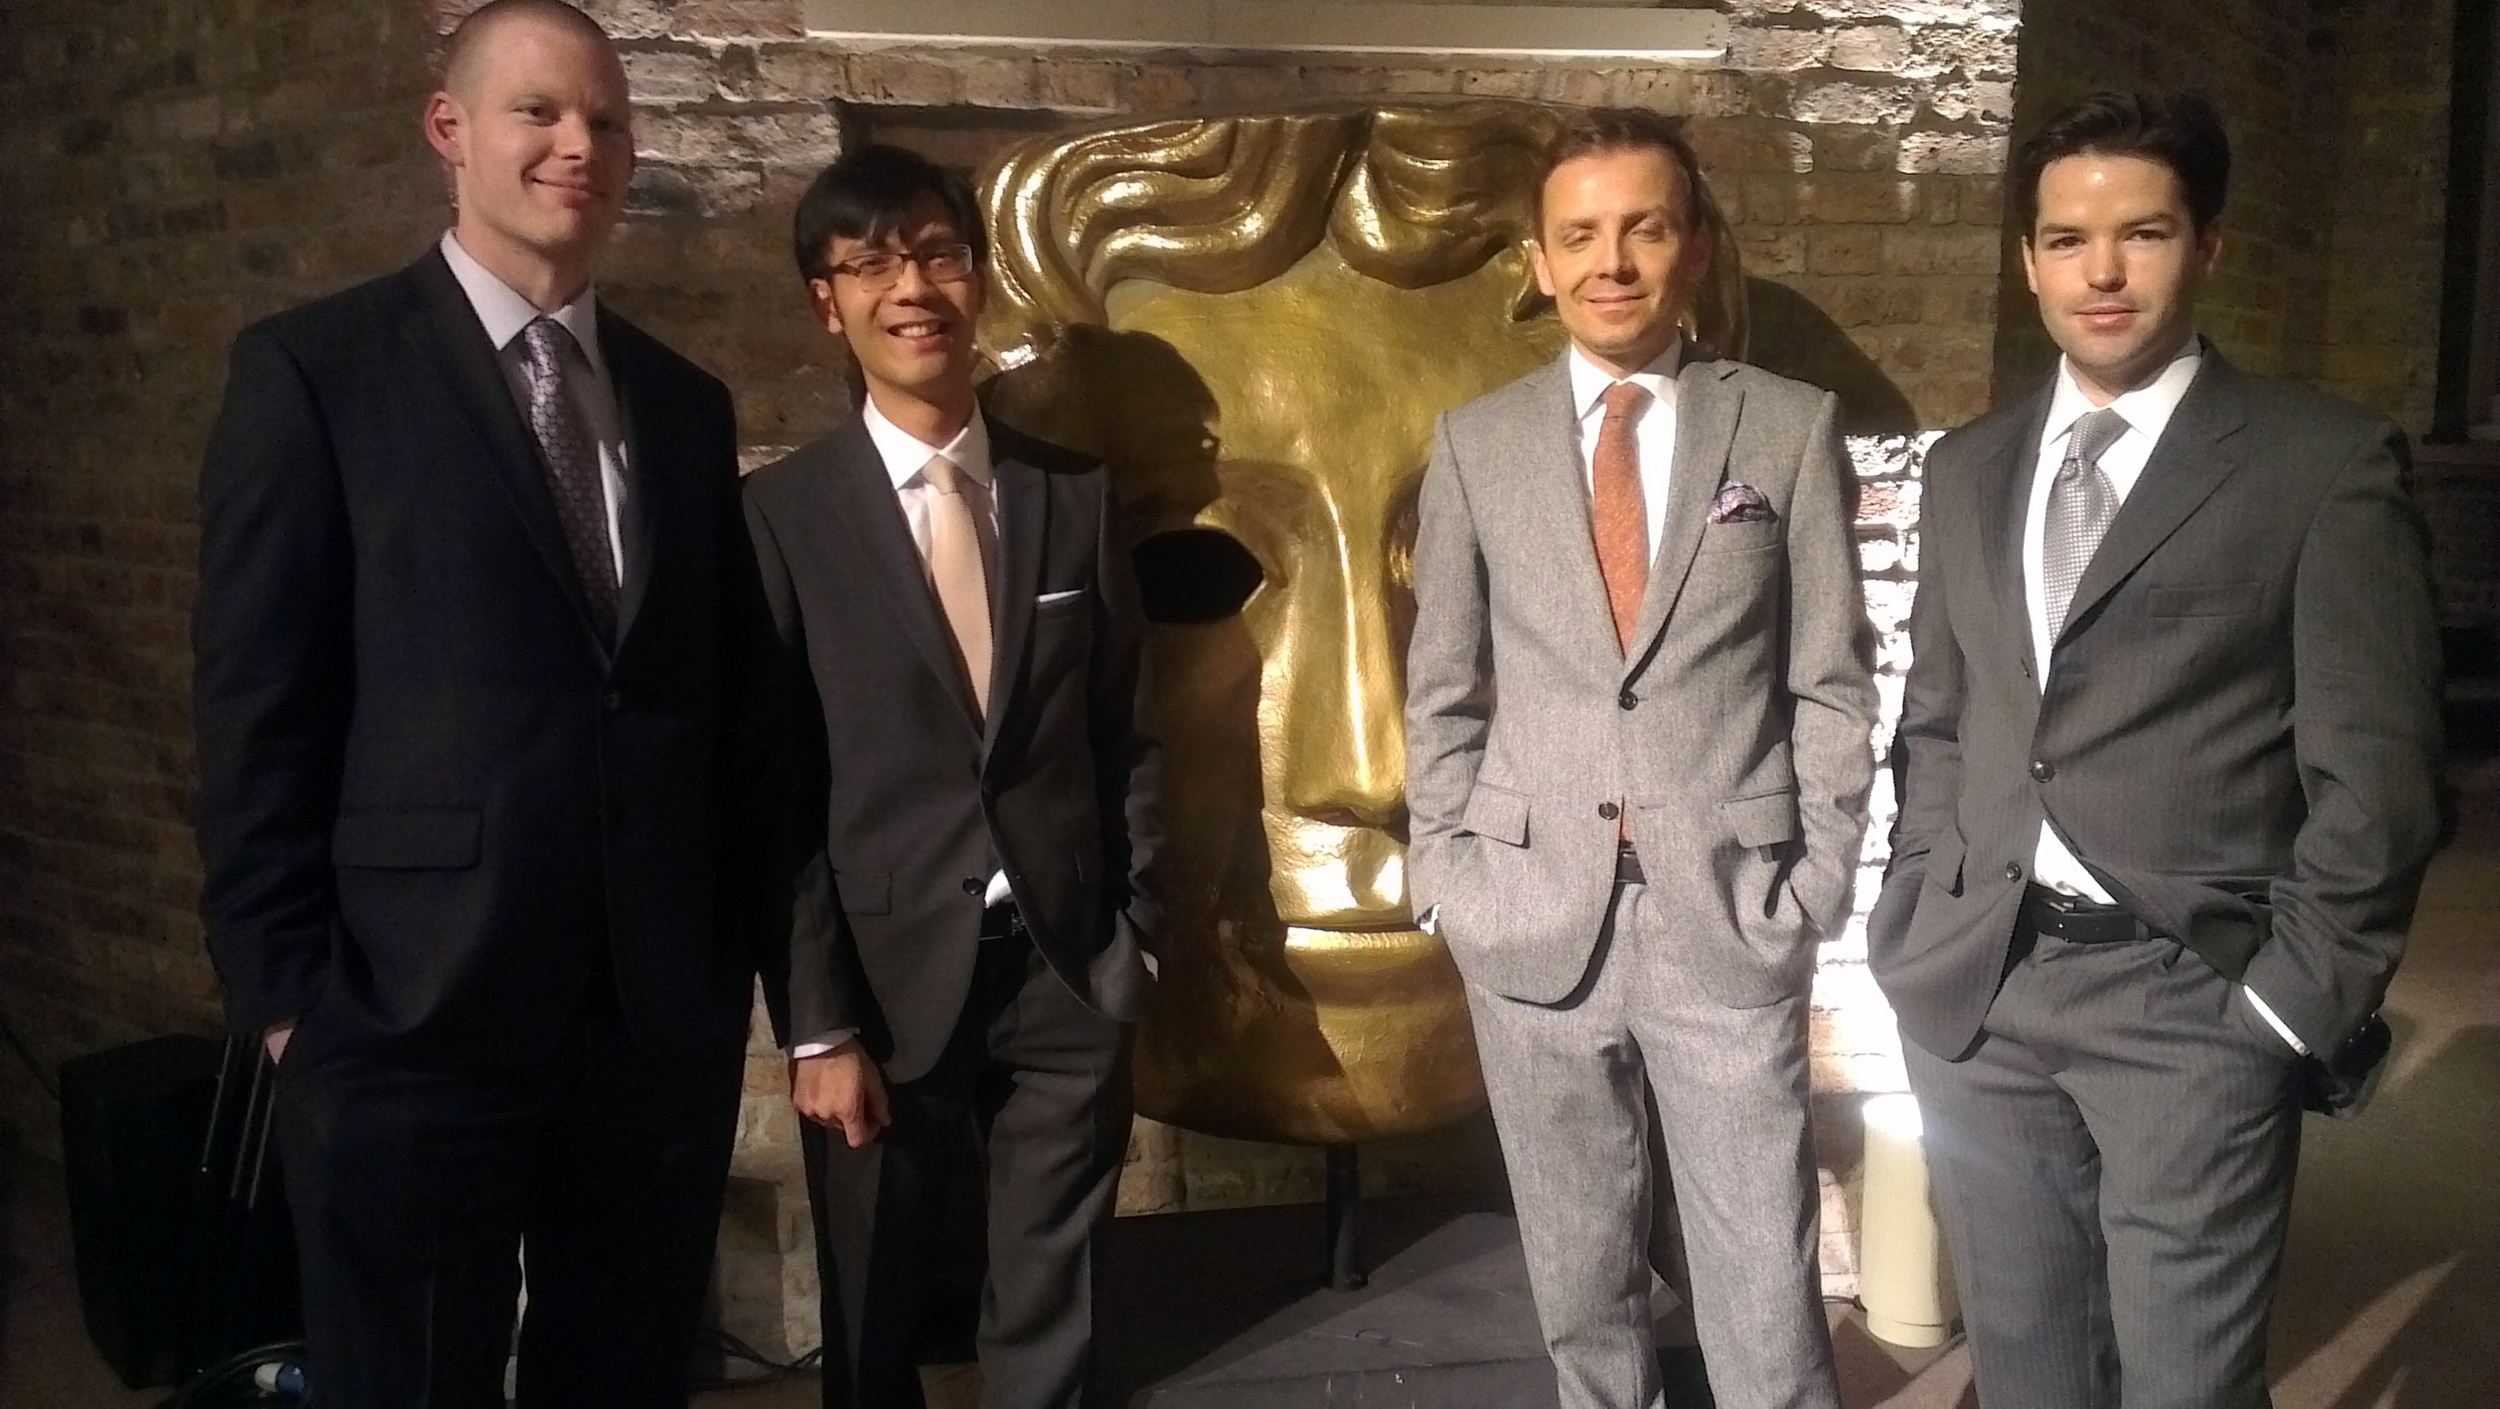 Alastair Campbell, Baldwin Li, Mark Gill, Harry Otto Brünjes at the BAFTA nominees party at Asprey, London